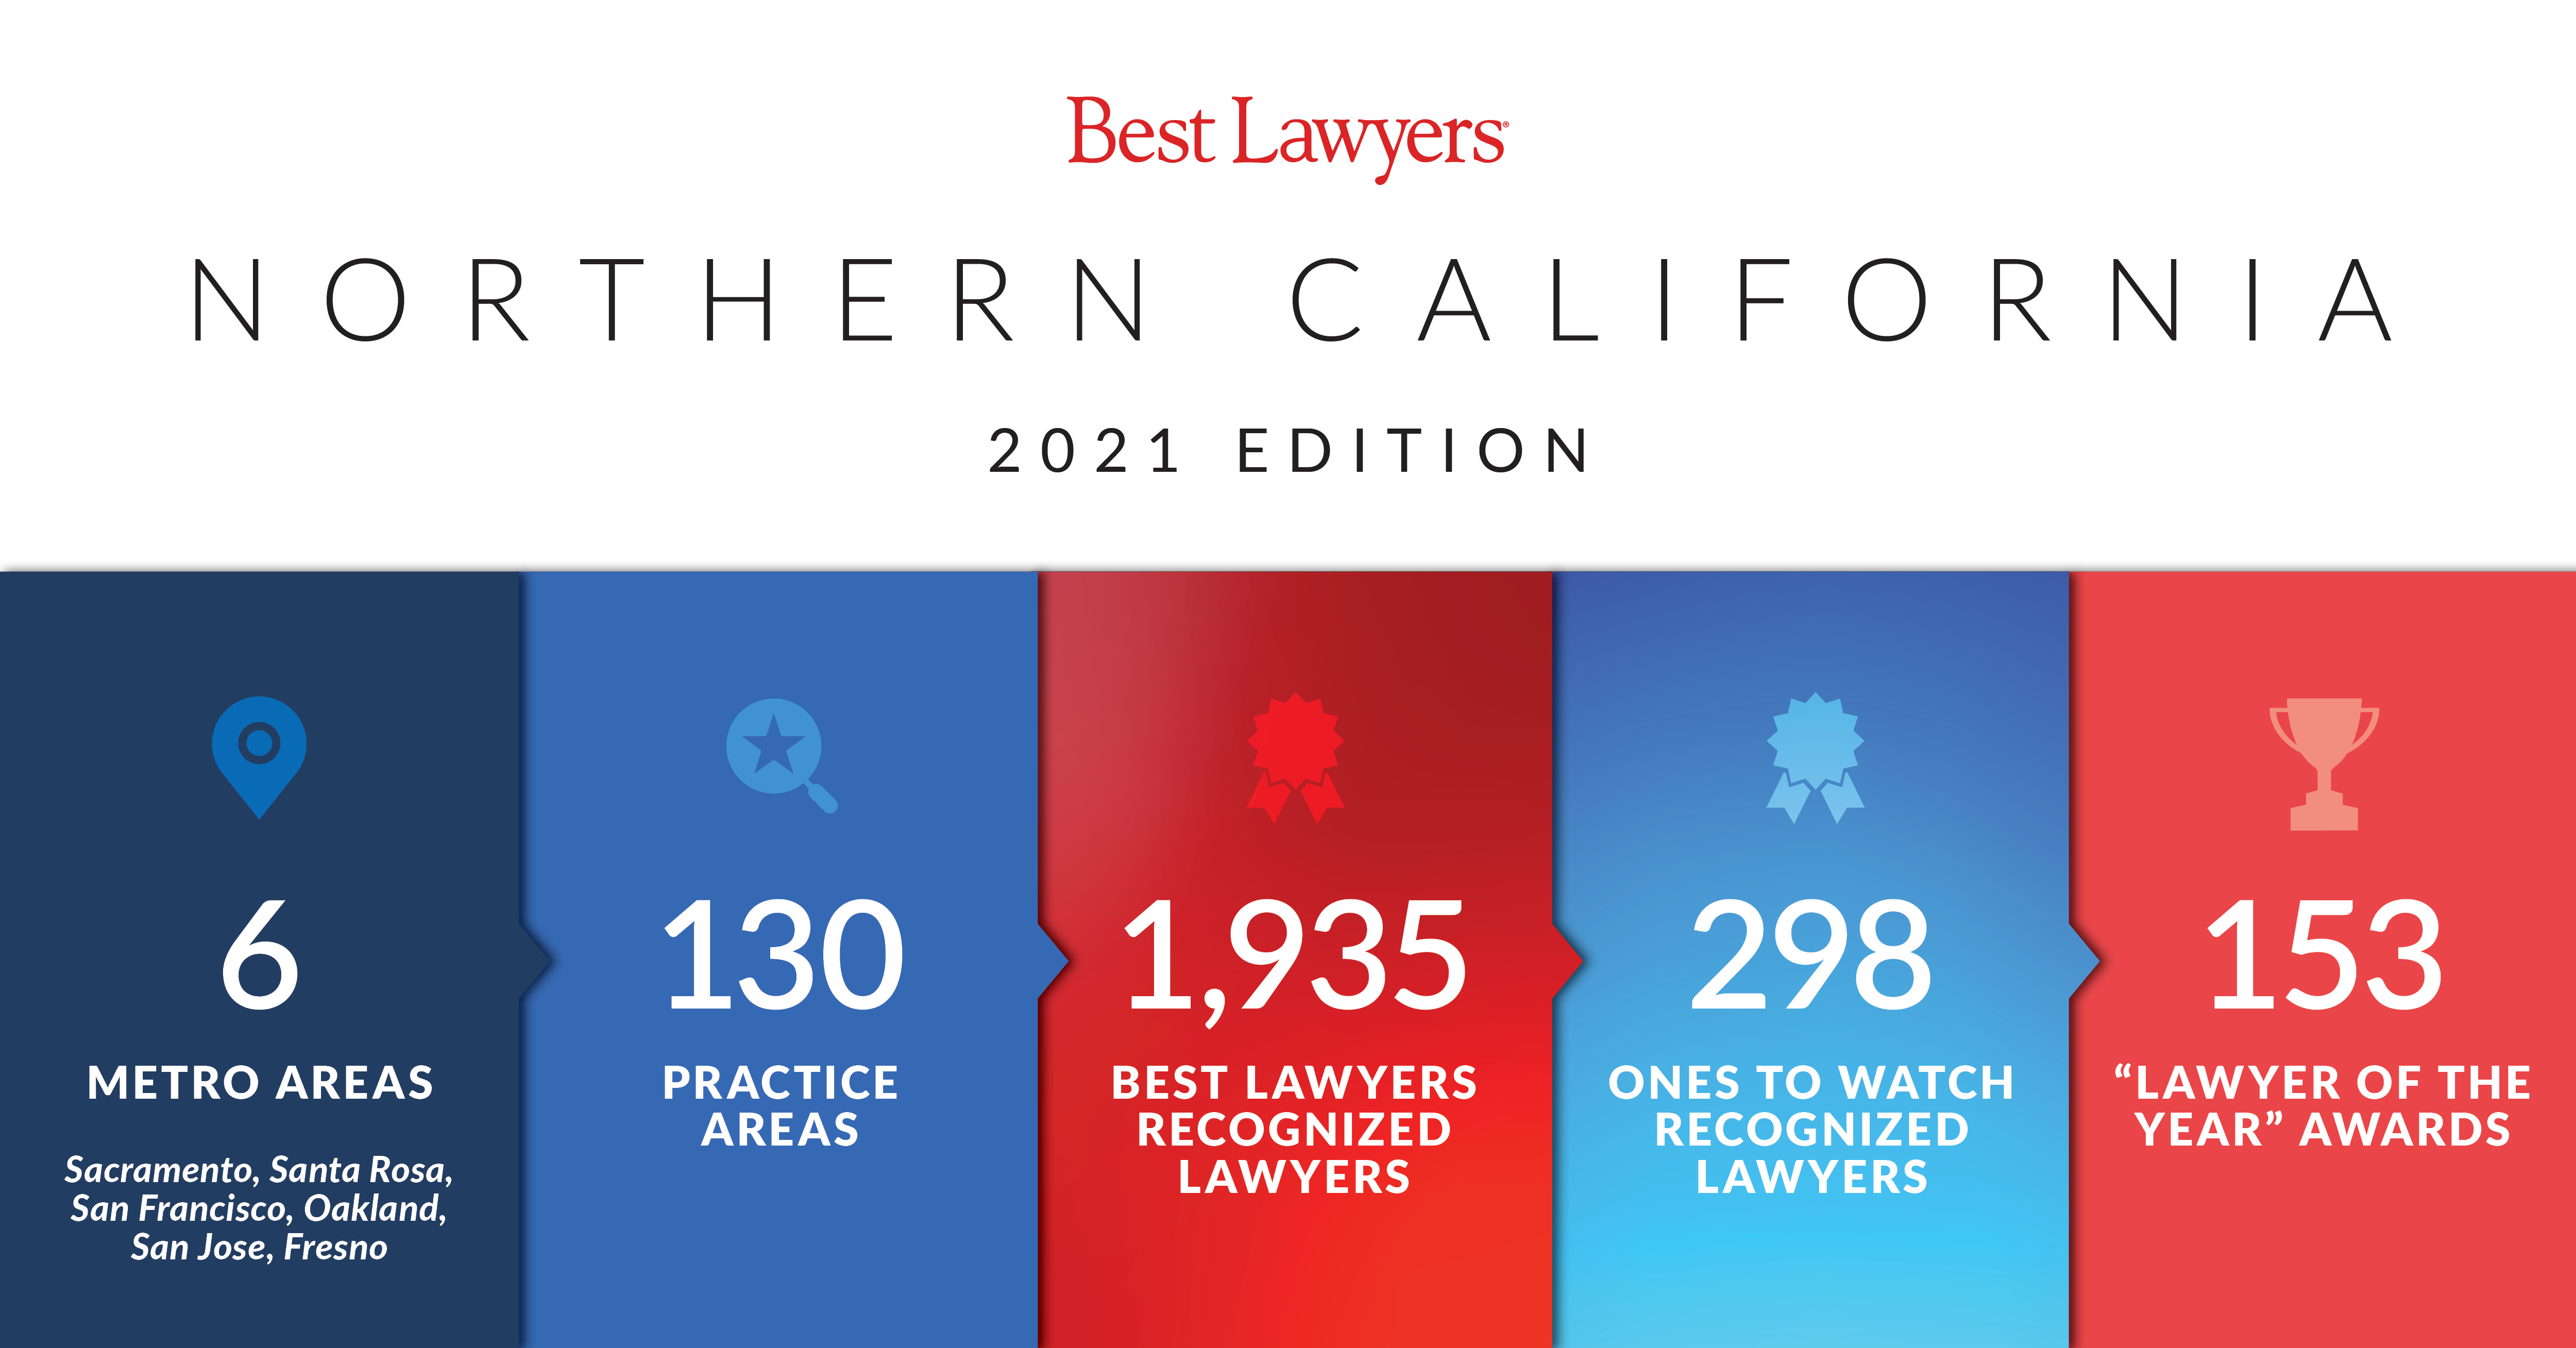 2021 Best Lawyers Northern California stats